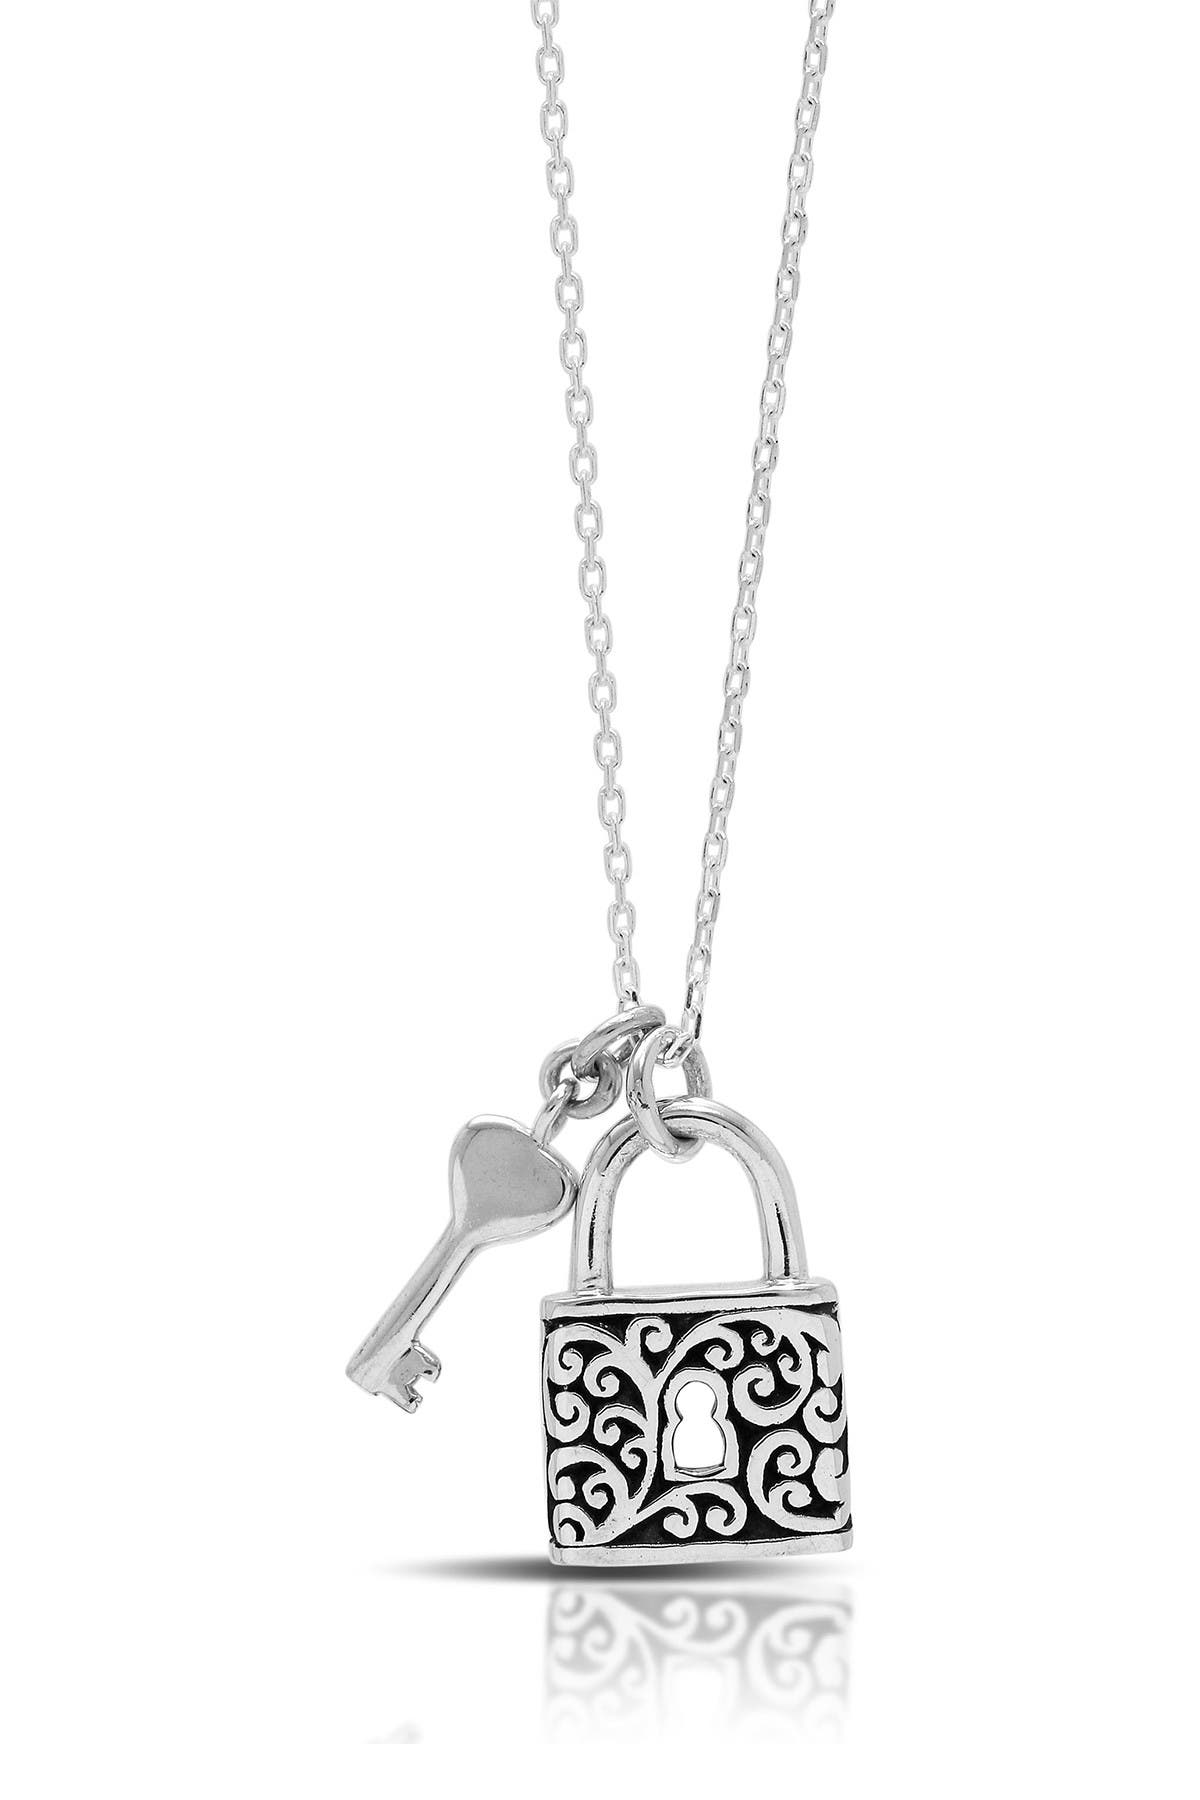 Image of Lois Hill Sterling Silver Baby Padlock with Key Pendant Necklace